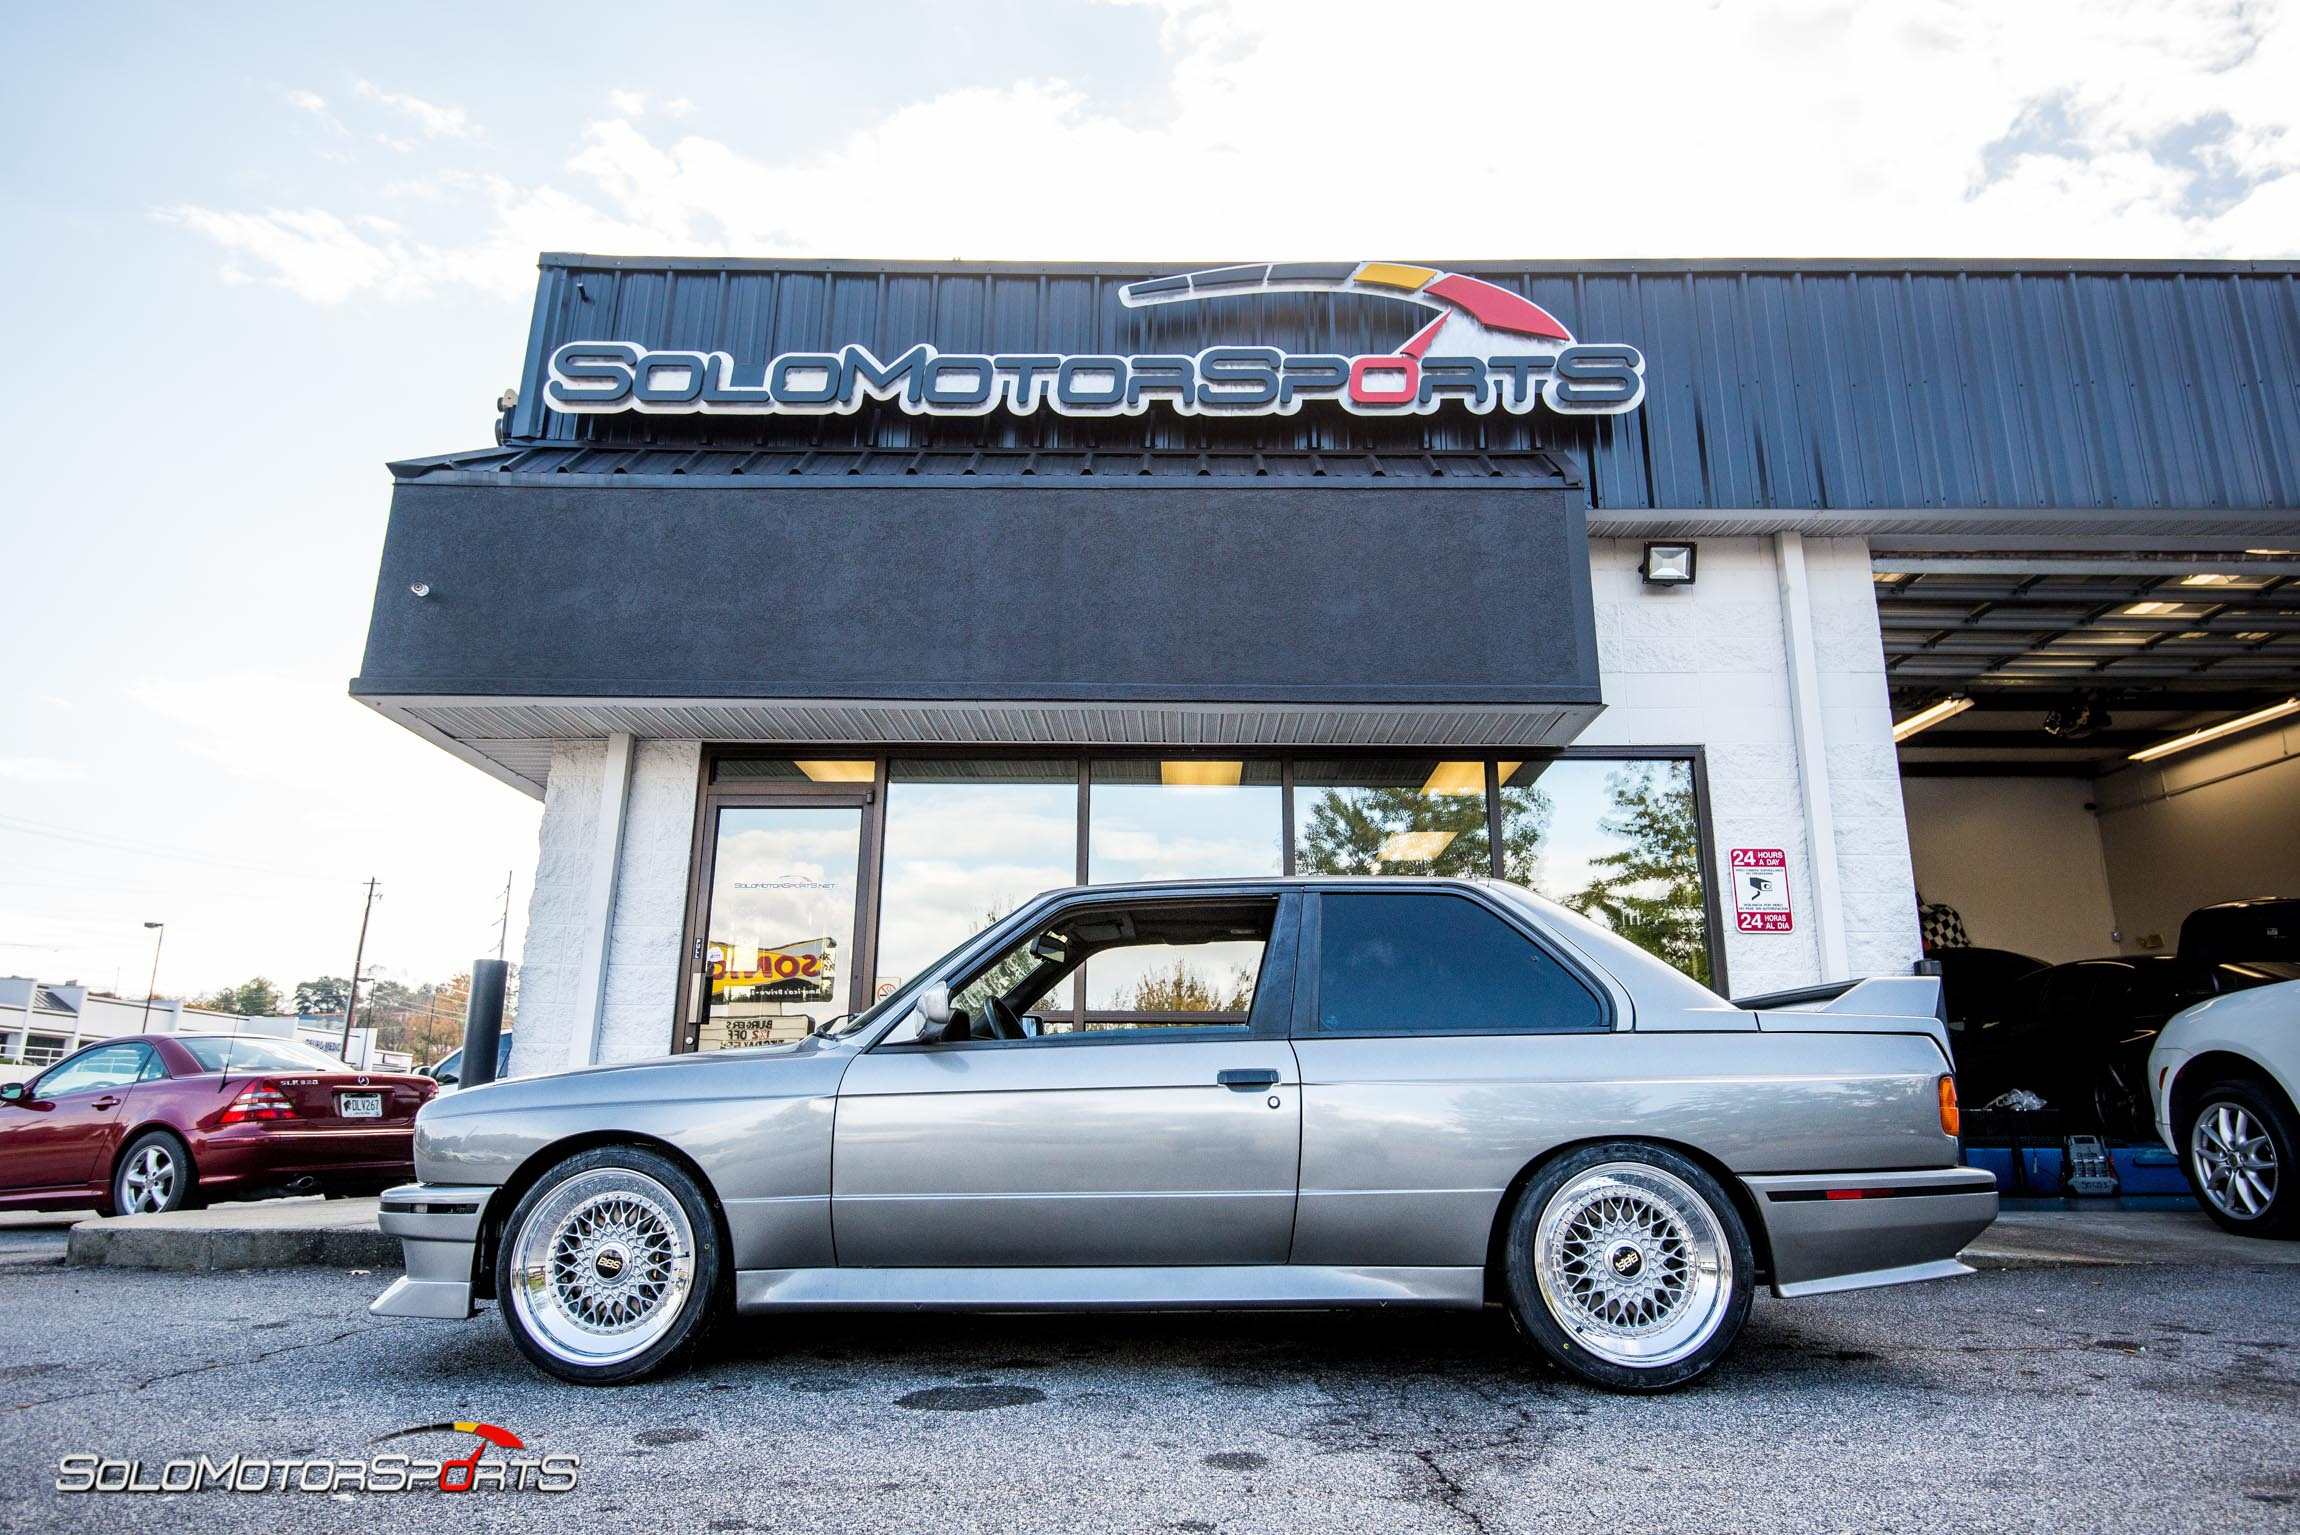 bmw e30 m3 turbo alternator wheels tires pulley maintenance bbs rss wheels 18 wheels classic bmw bmw m3